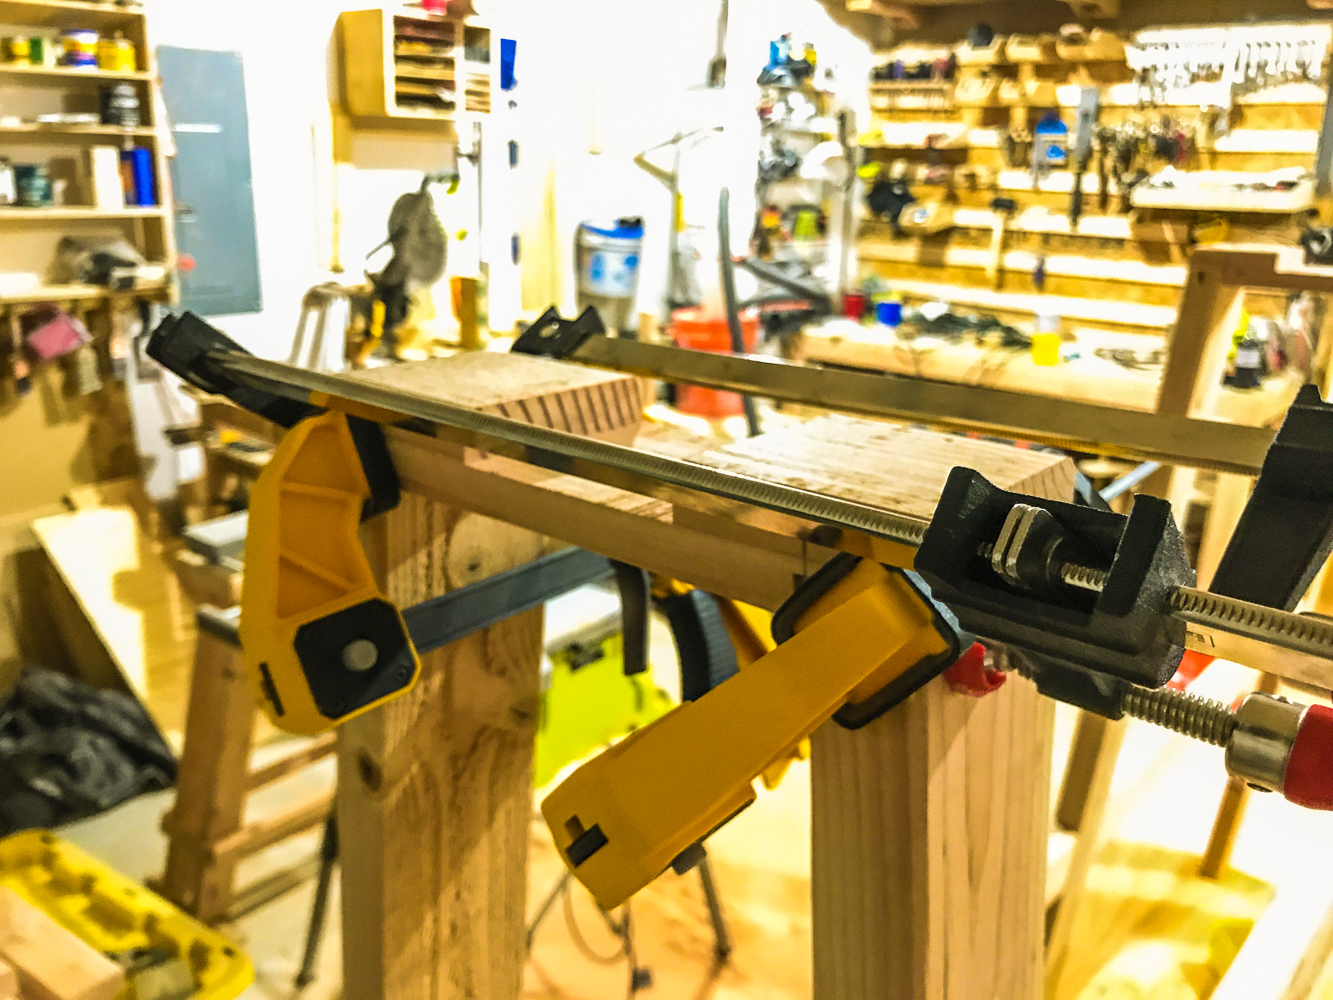 Lumber Cart - Upper Brace With Clamps